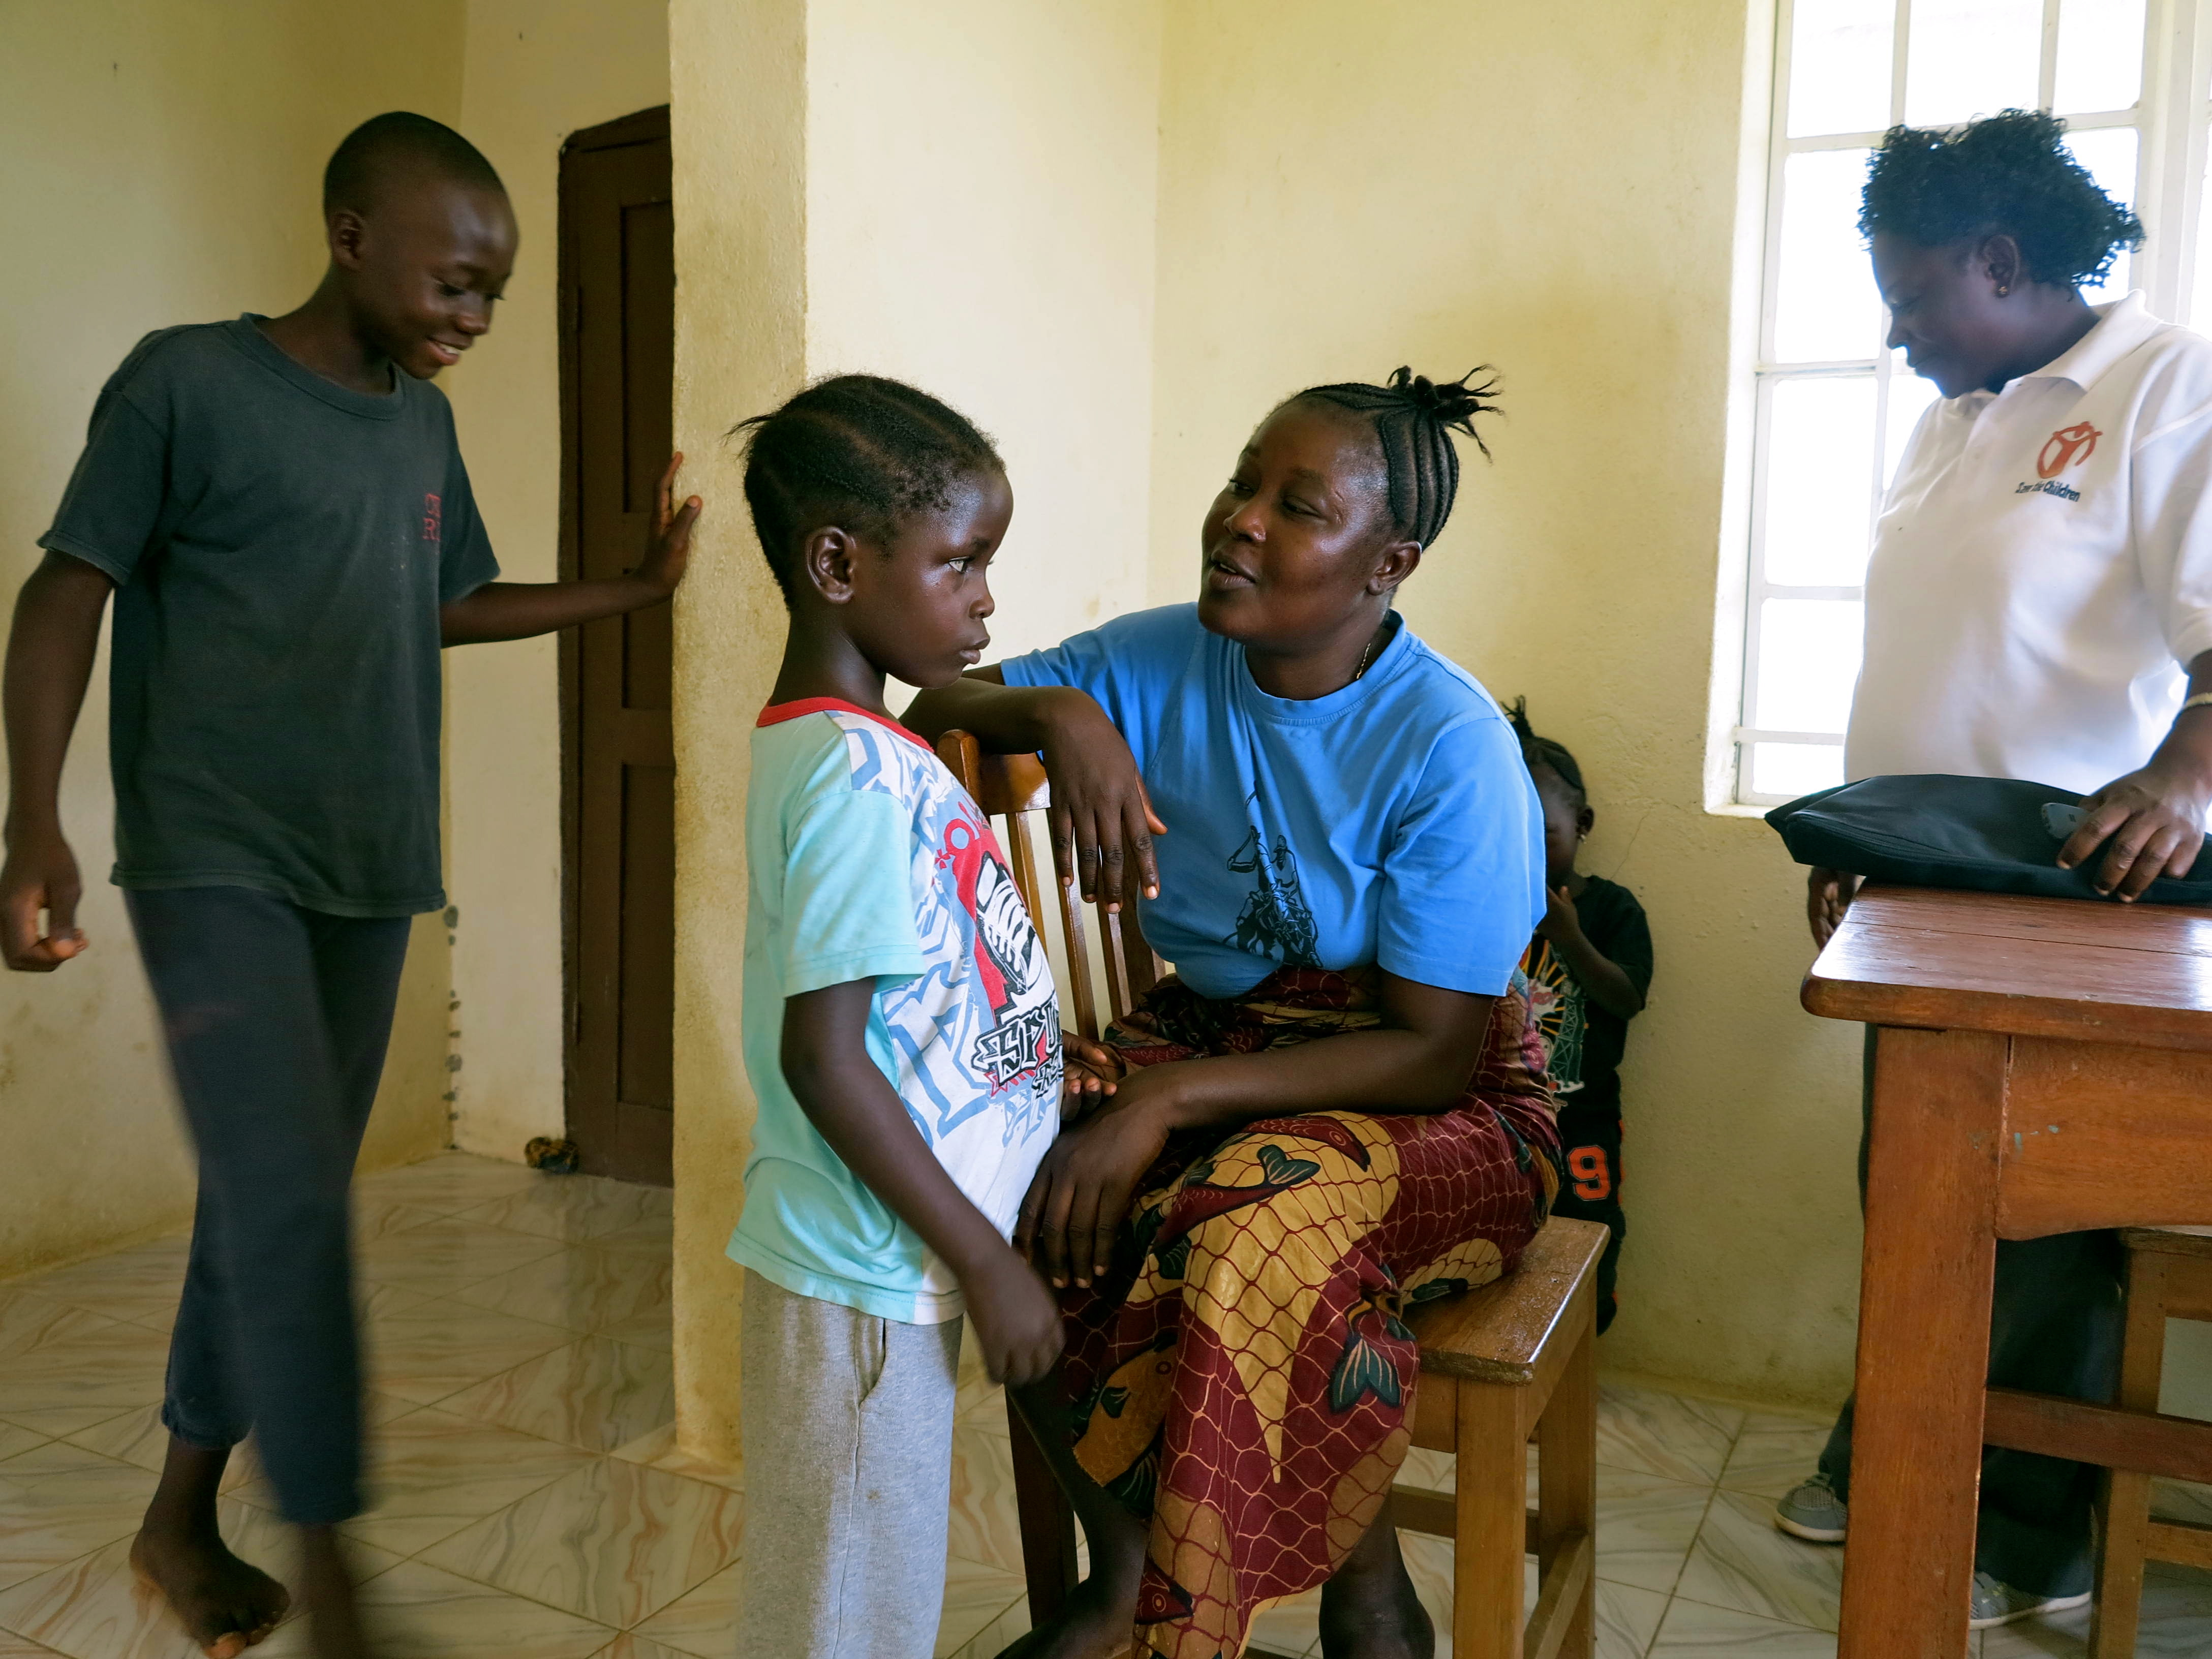 Hawa and Fattu provide support to Rose and Francis in the half way house. (c) UNICEF Sierra Leone/2014/Dunlop